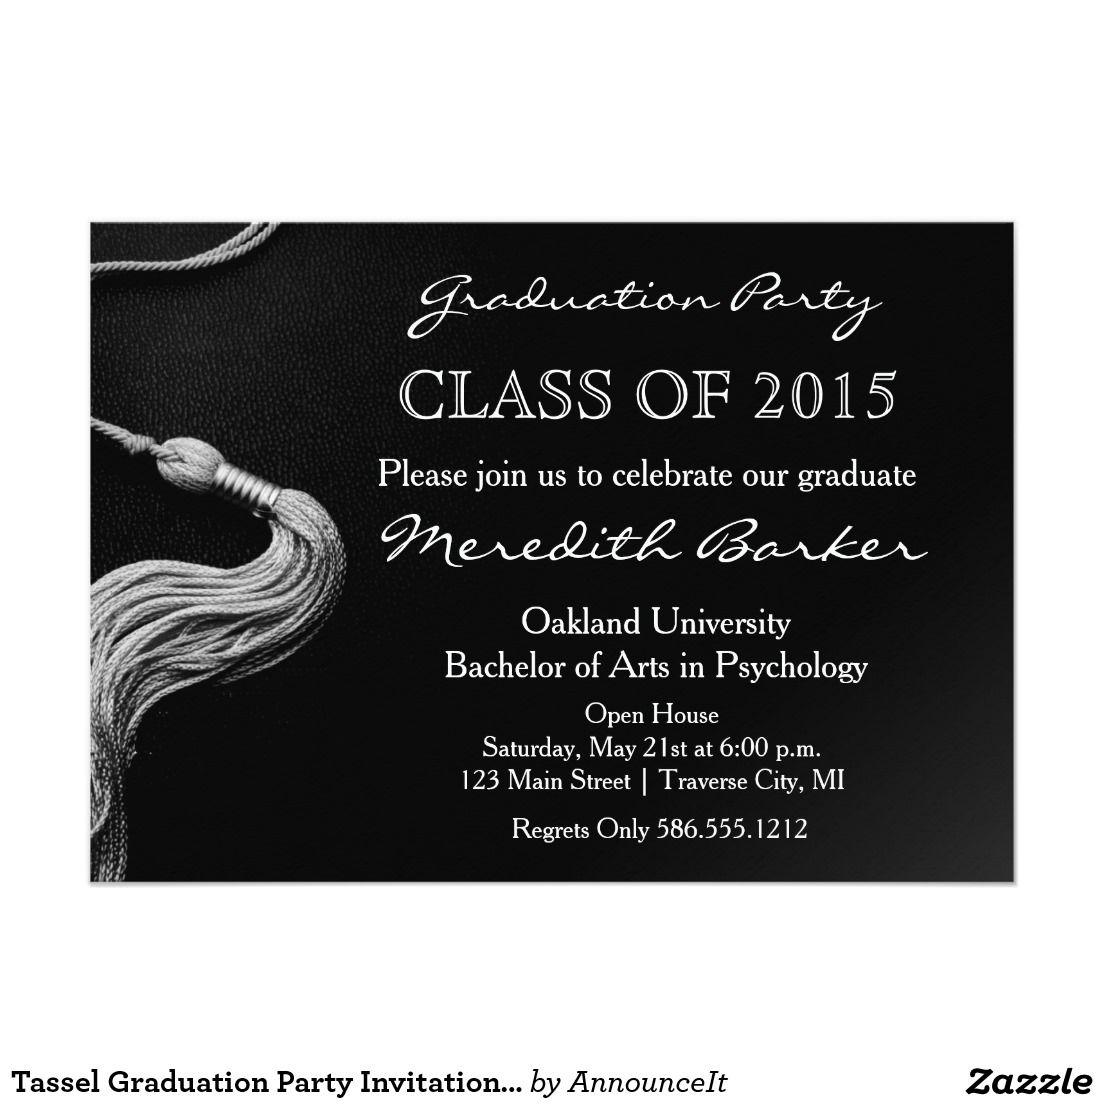 Tassel Graduation Party Invitation Class of 2015 5 X 7 – 2015 Graduation Party Invitations